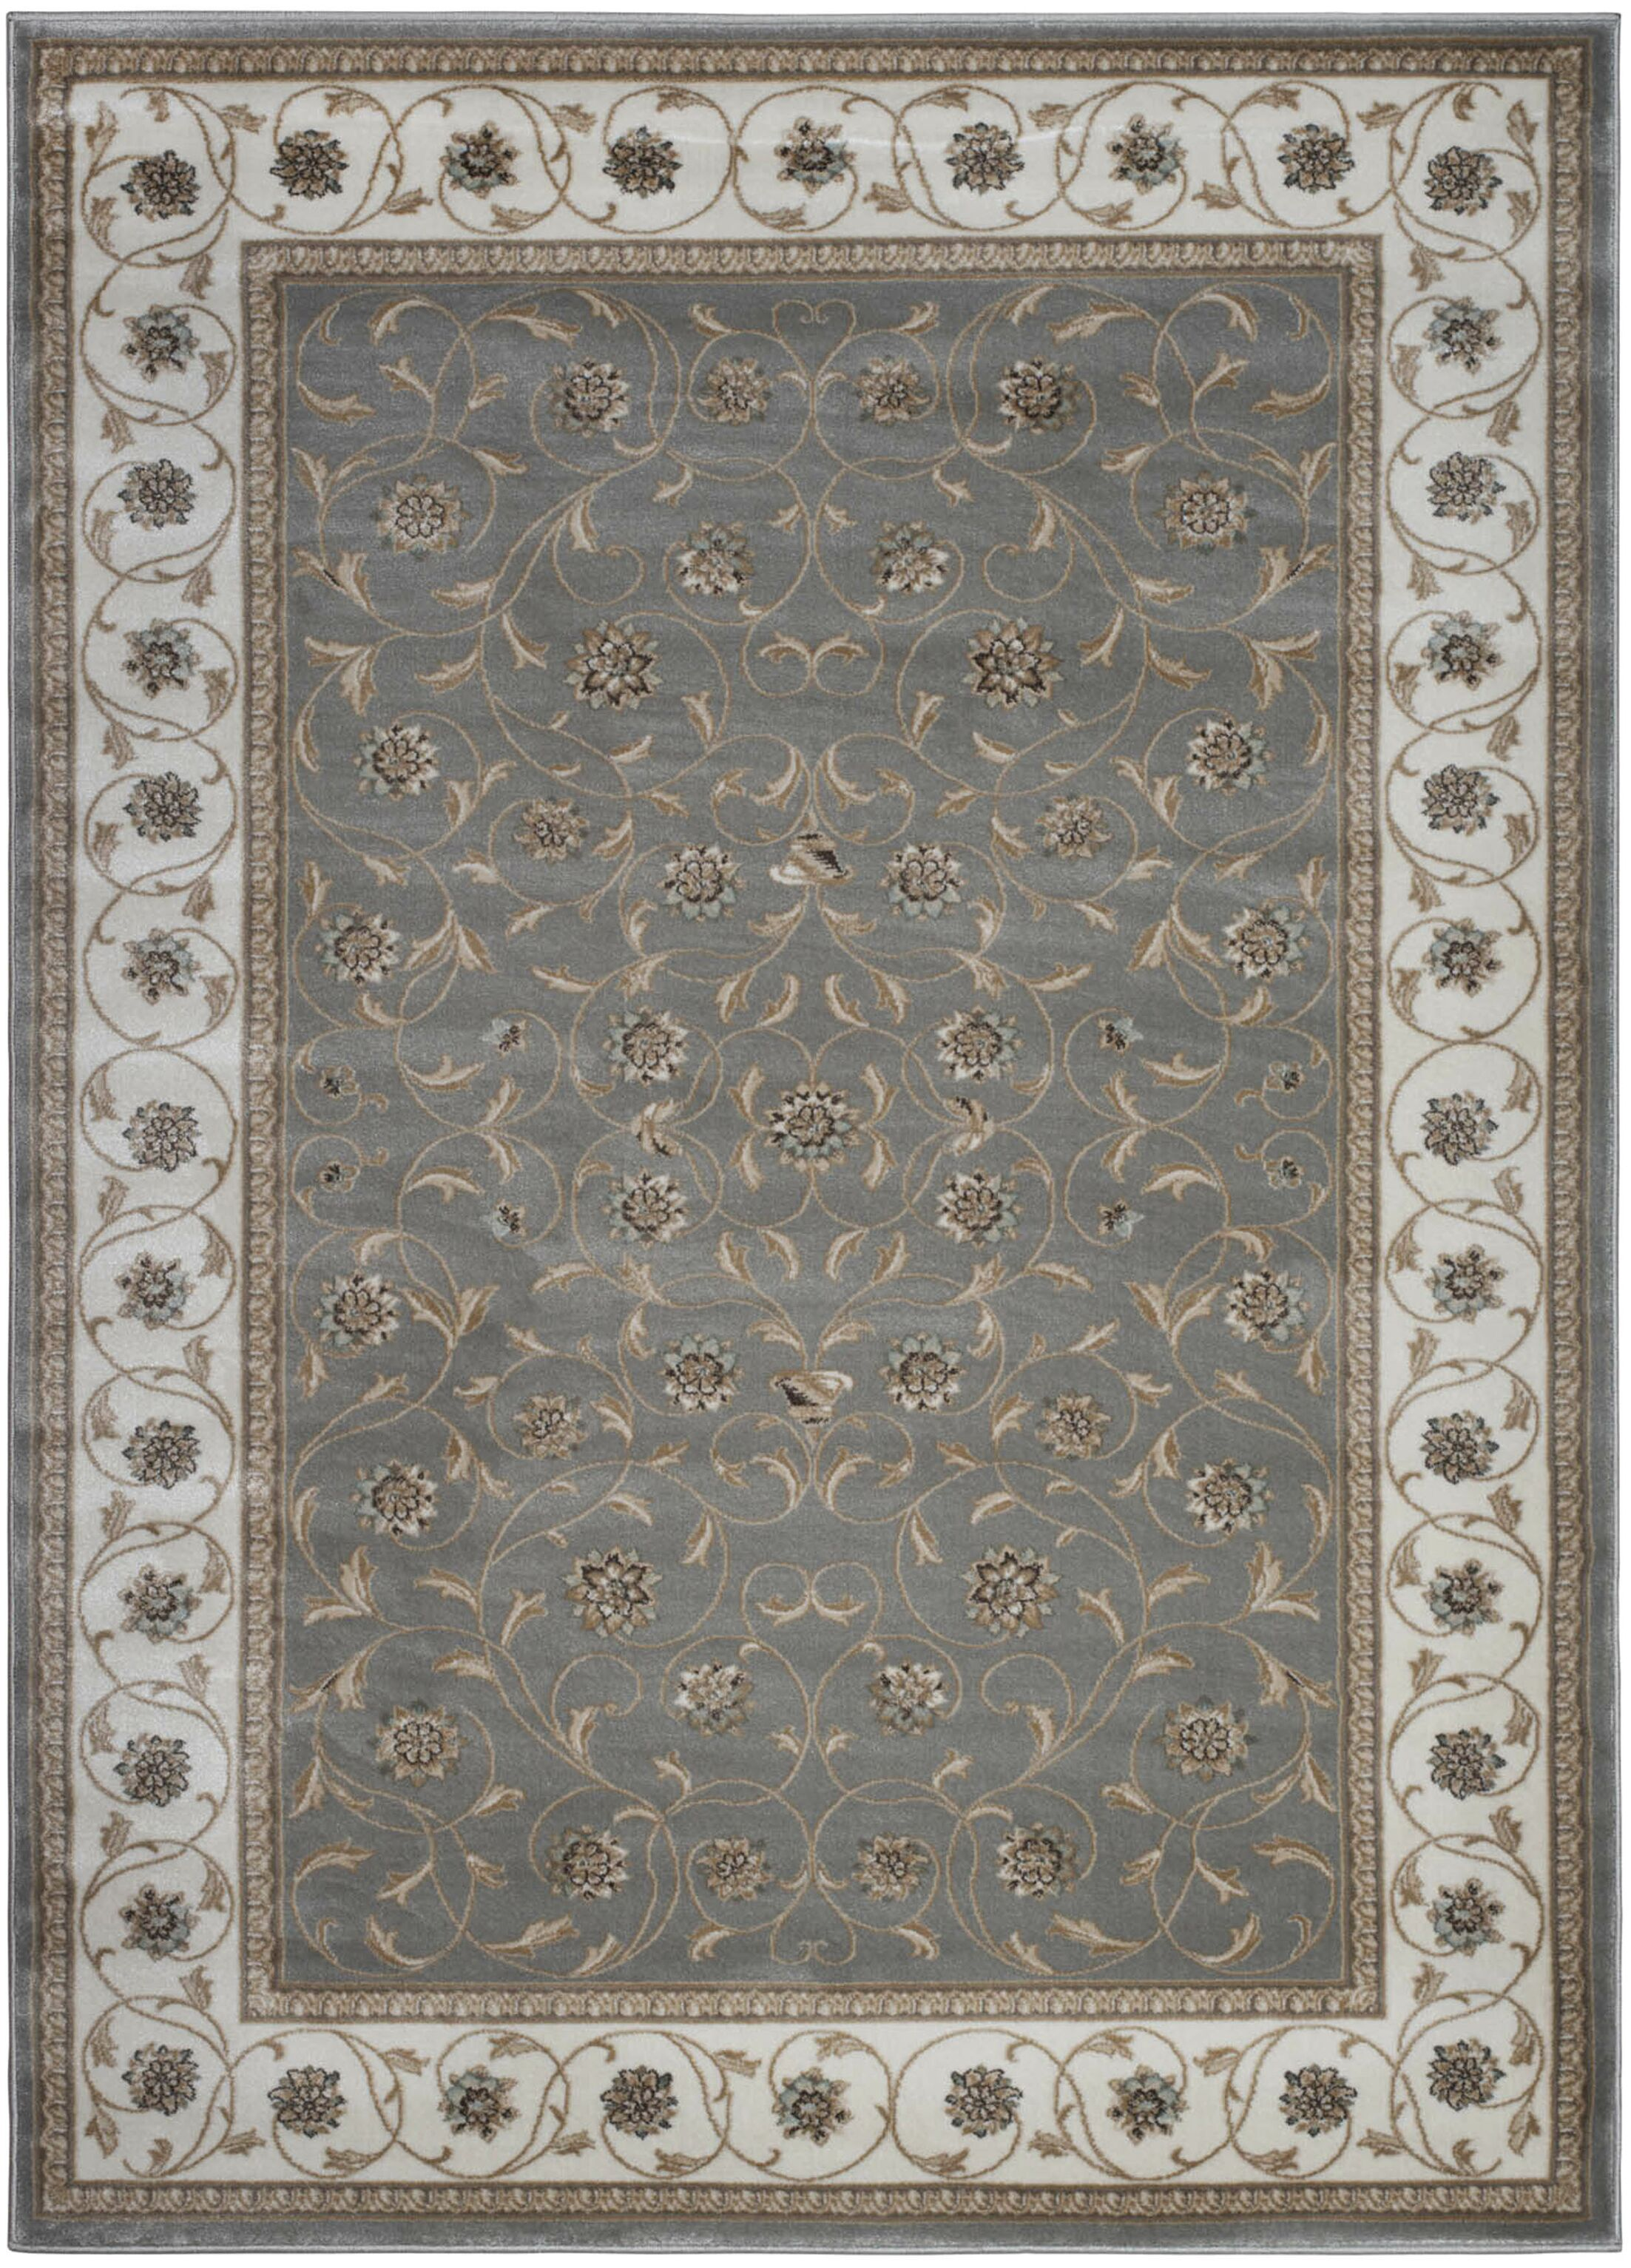 Ackermanville Gray Area Rug Rug Size: Rectangle 5'3